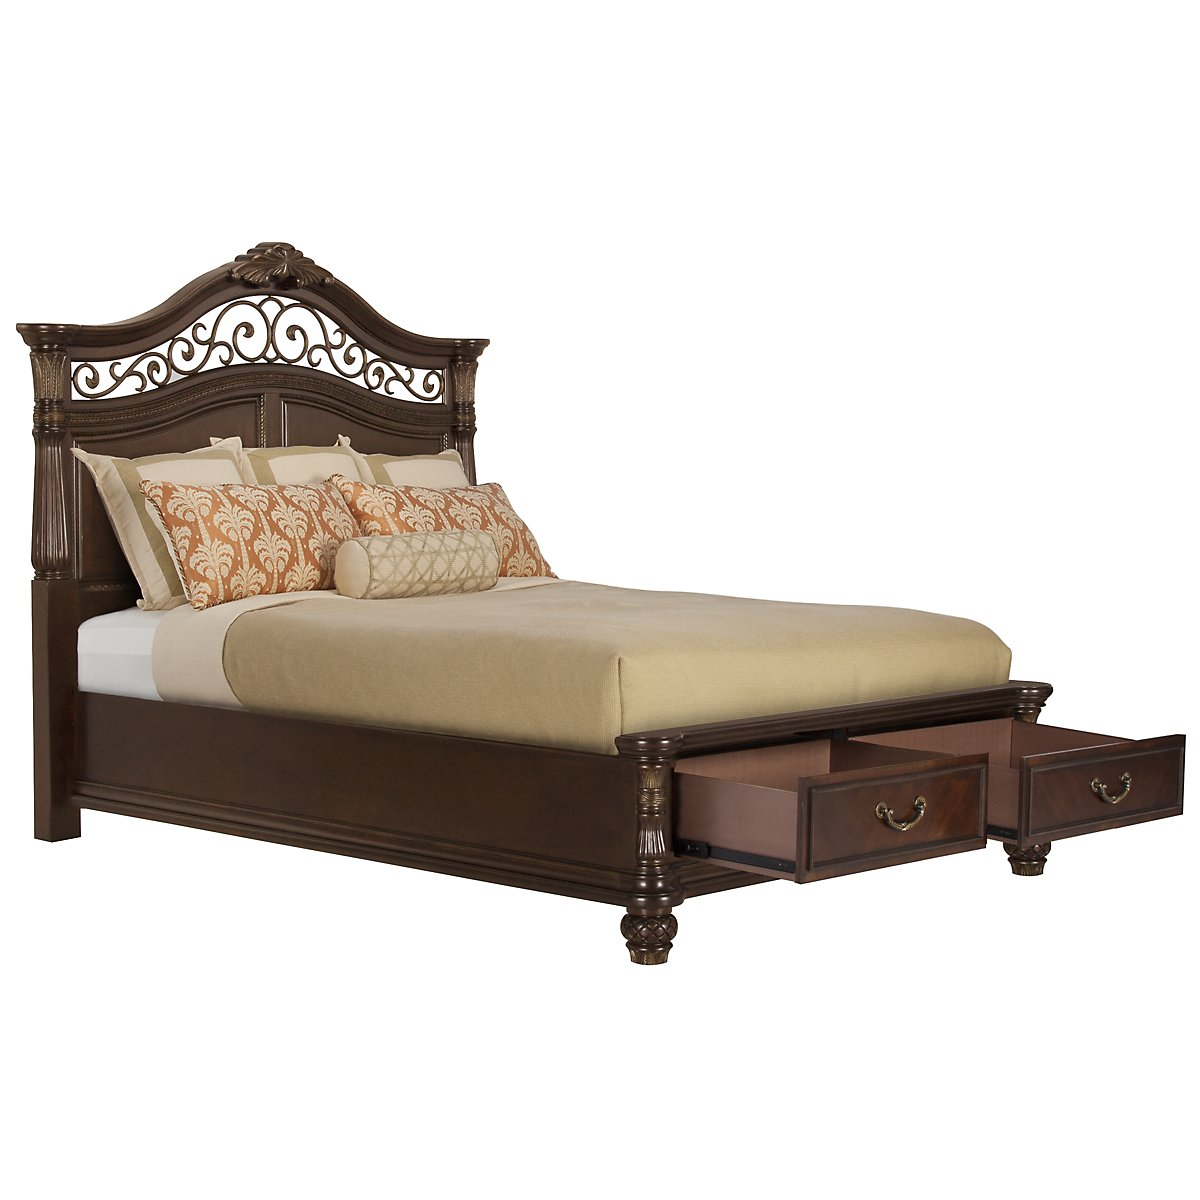 Tradewinds Dark Tone Mansion Storage Bed